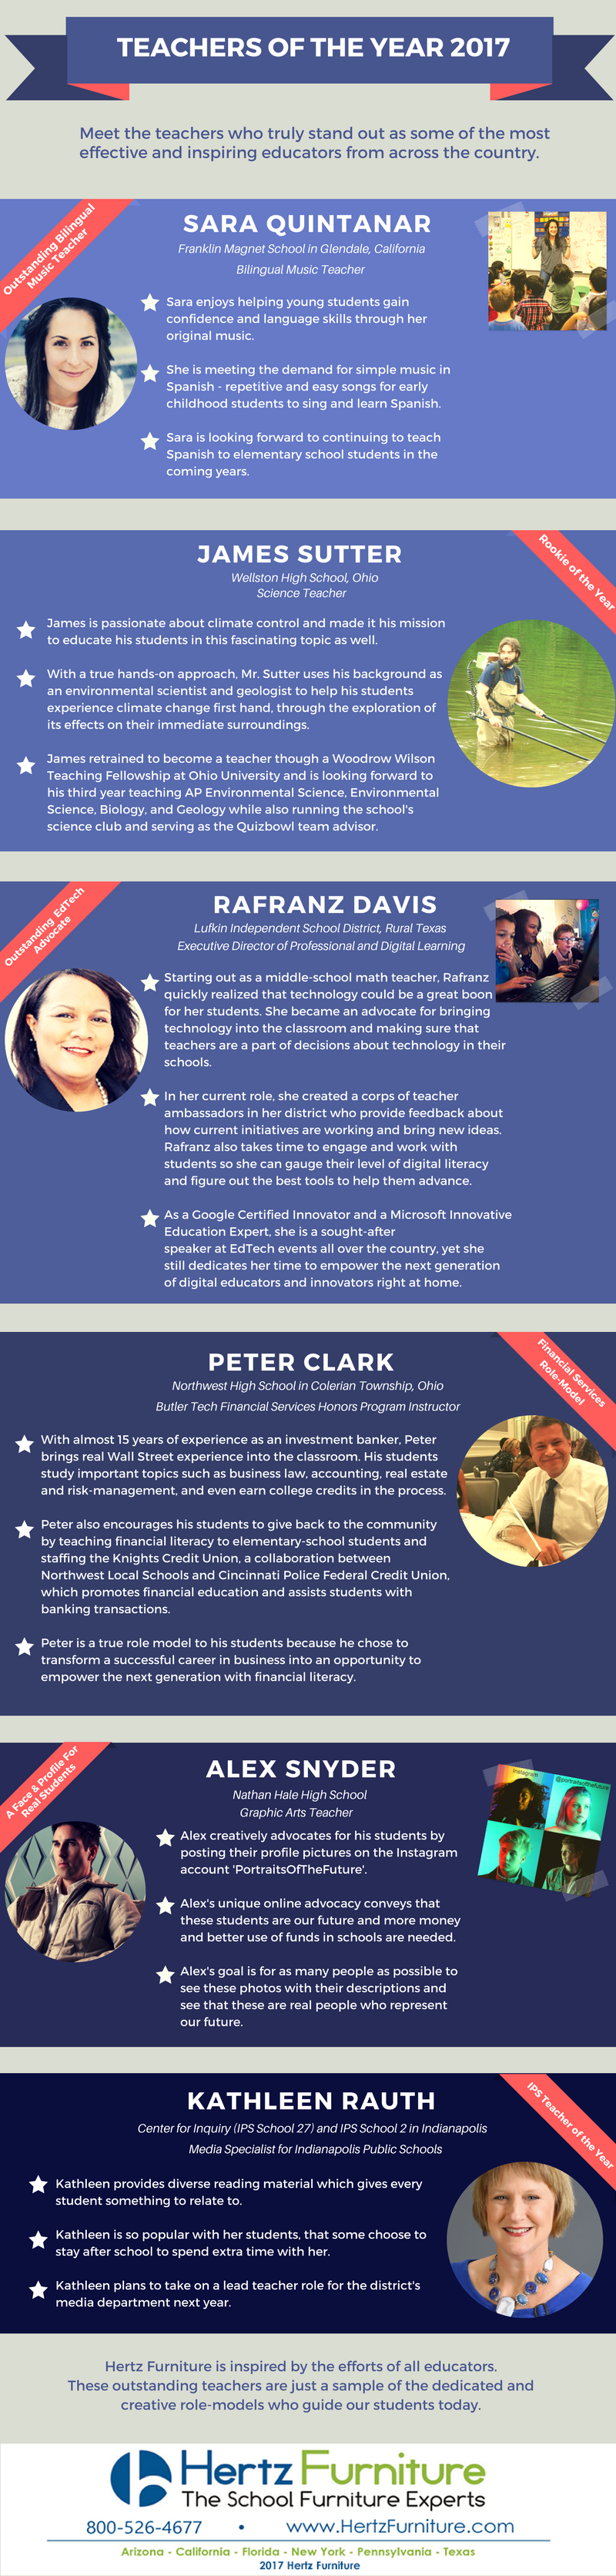 Teachers of the Year 2017 Infographic Teacher of the Year Infographic